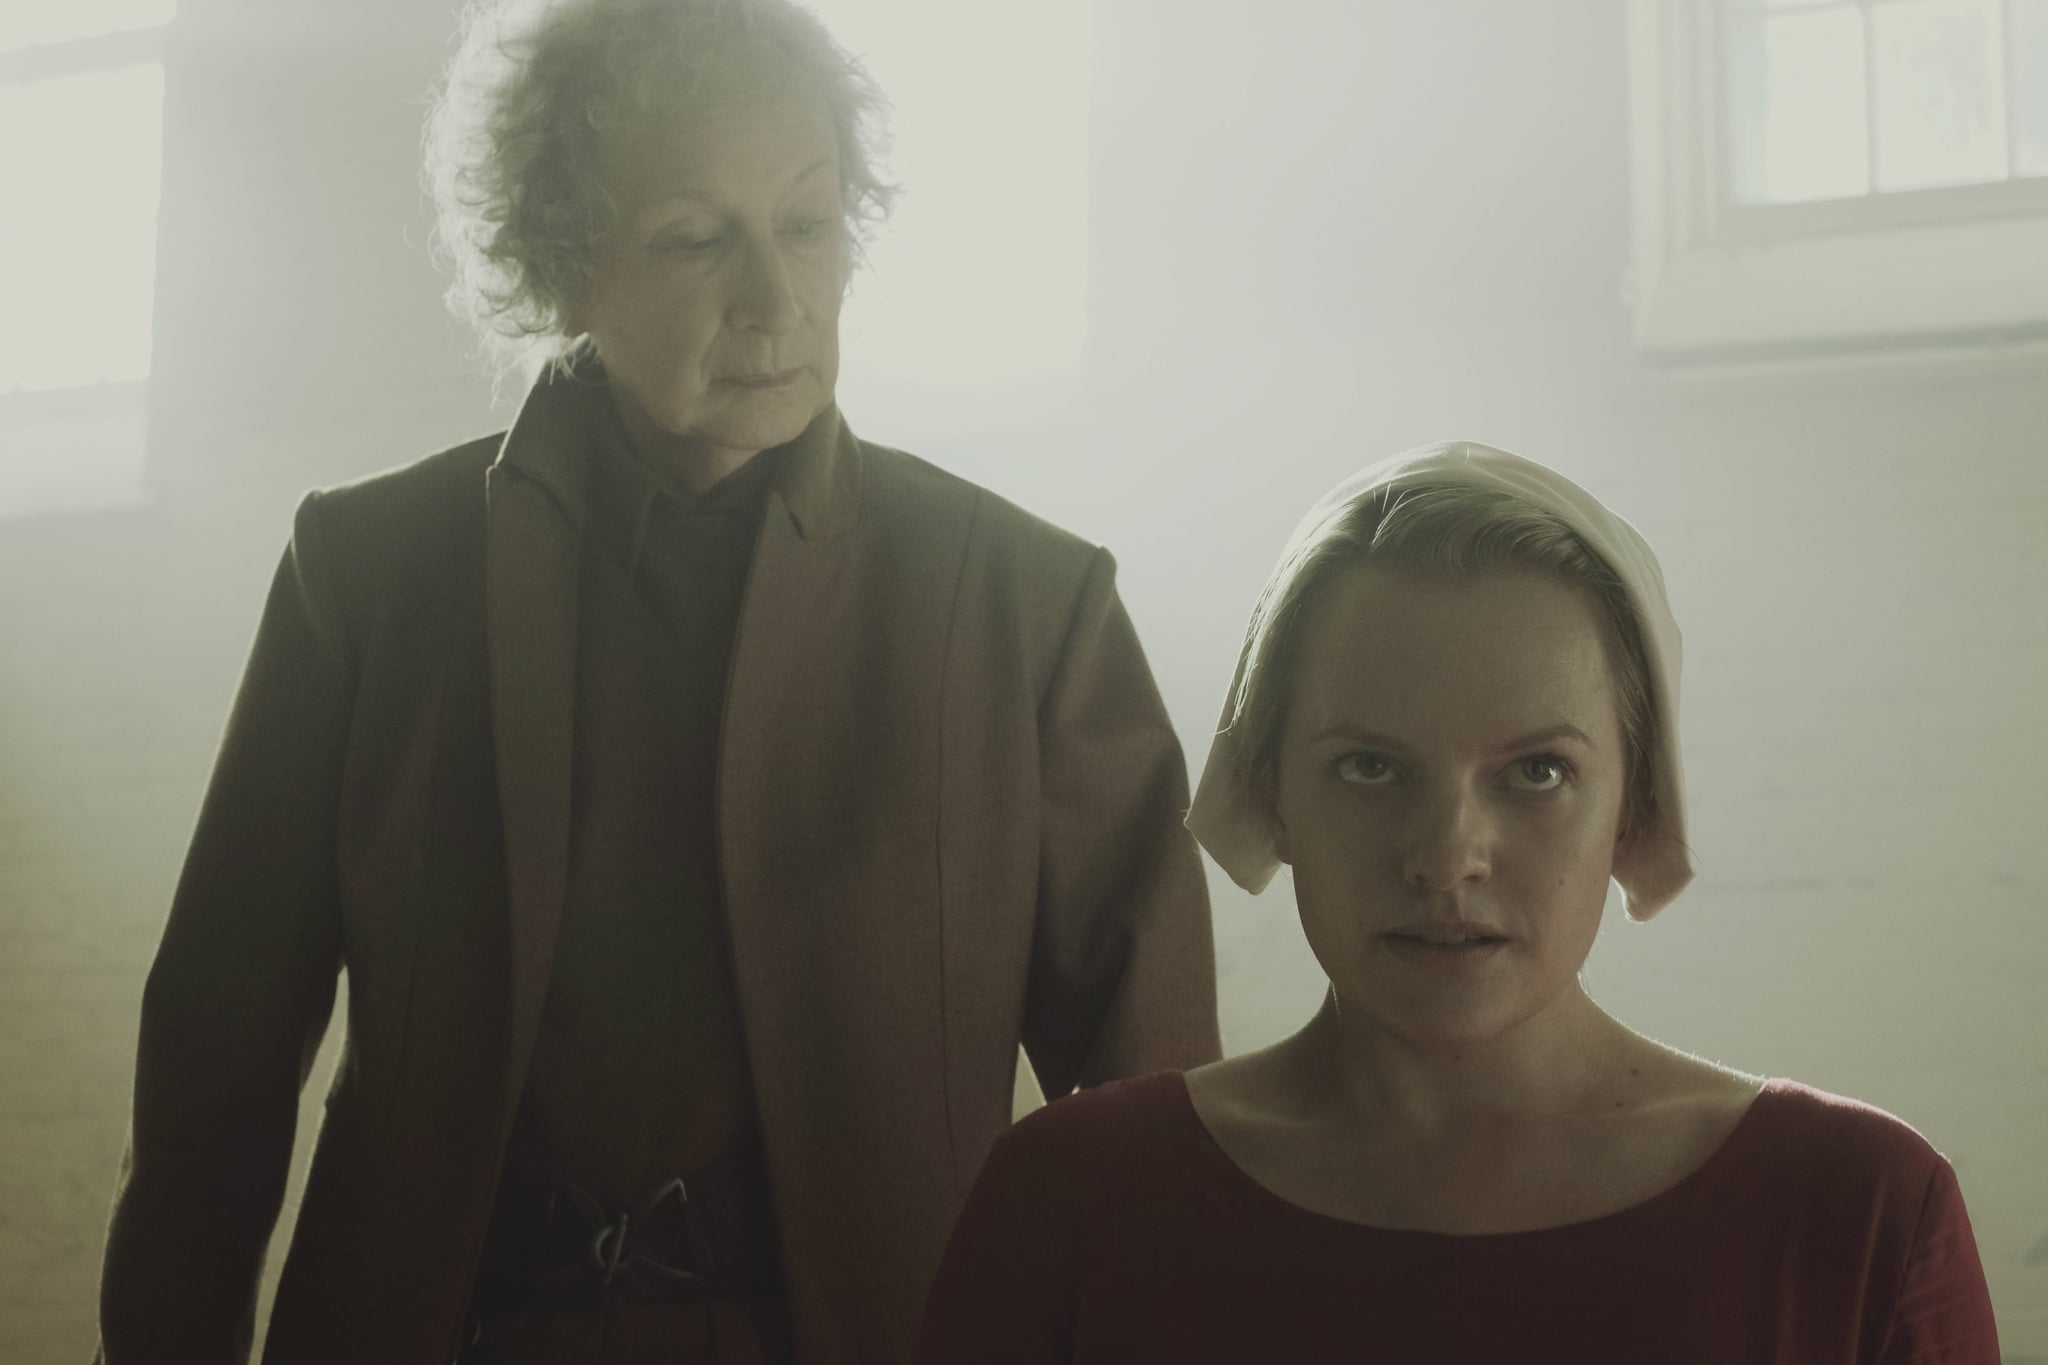 analysis of the handmaids tale by margaret atwoods Atwood's classic dystopia, the tale of a concubine in an oppressive future america is more vital than ever, writes charlotte newman.